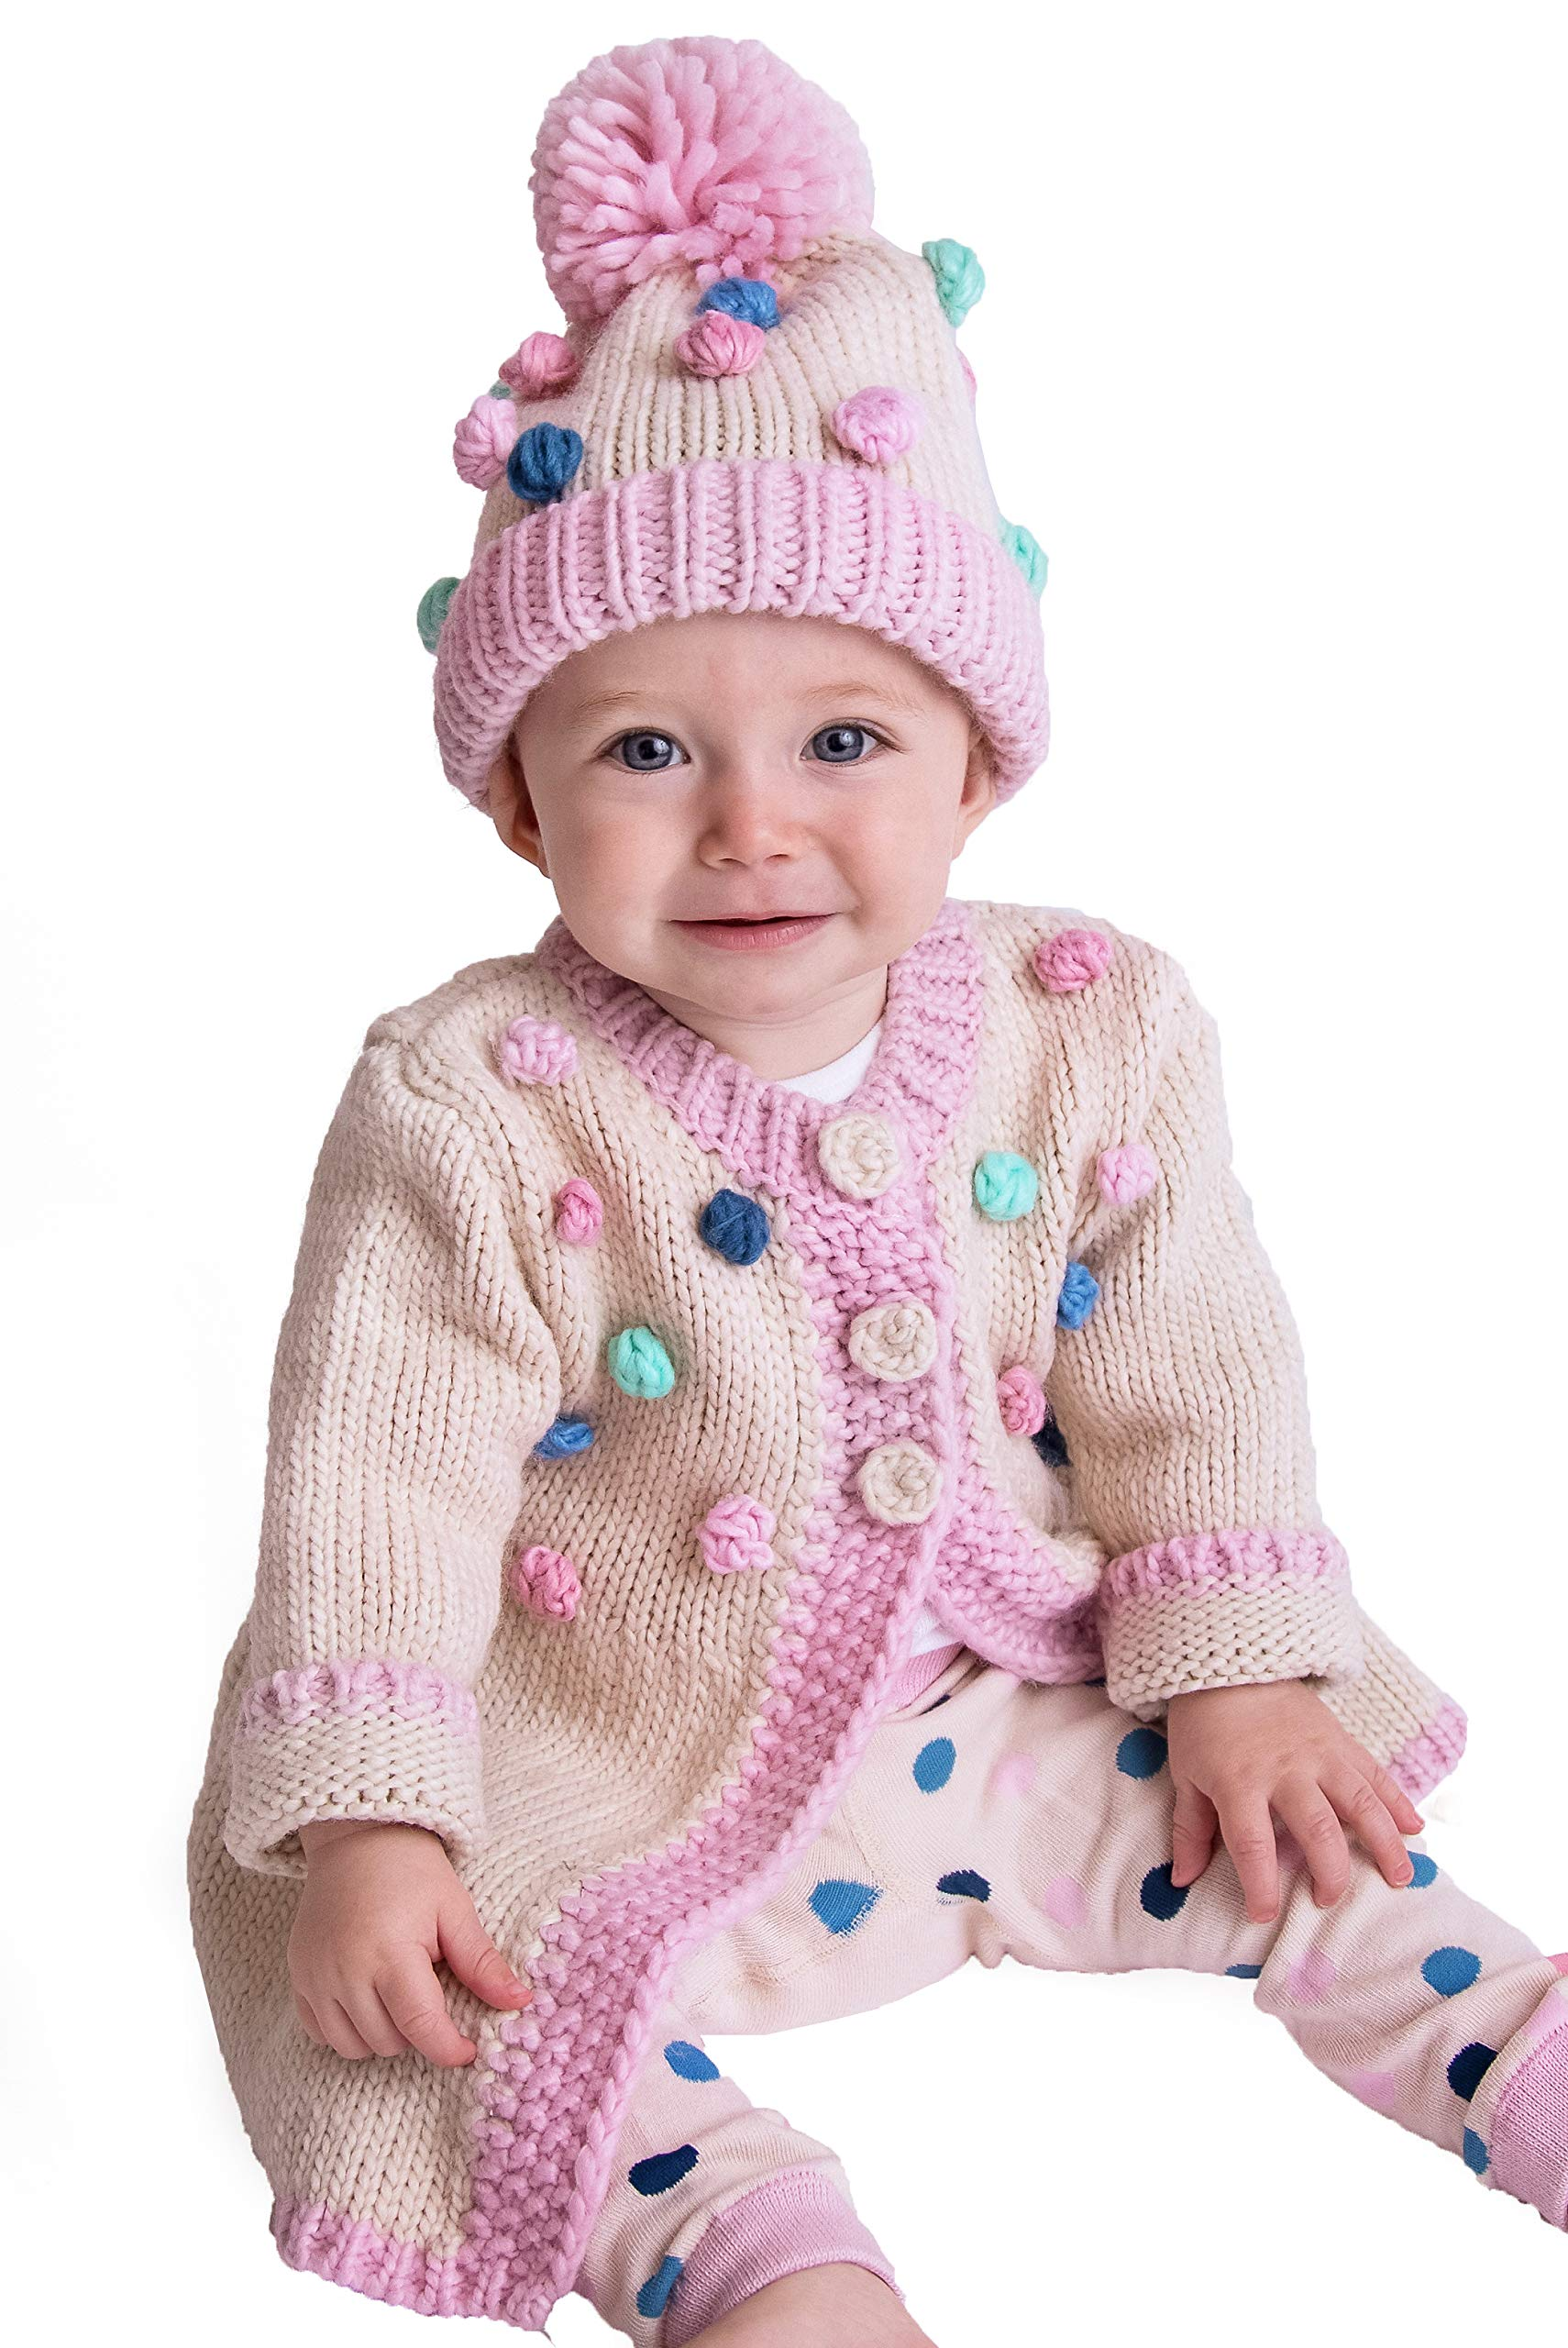 Huggalugs Baby and Toddler Girls Popcorn Dot Knit Sweater 2-3 by Huggalugs